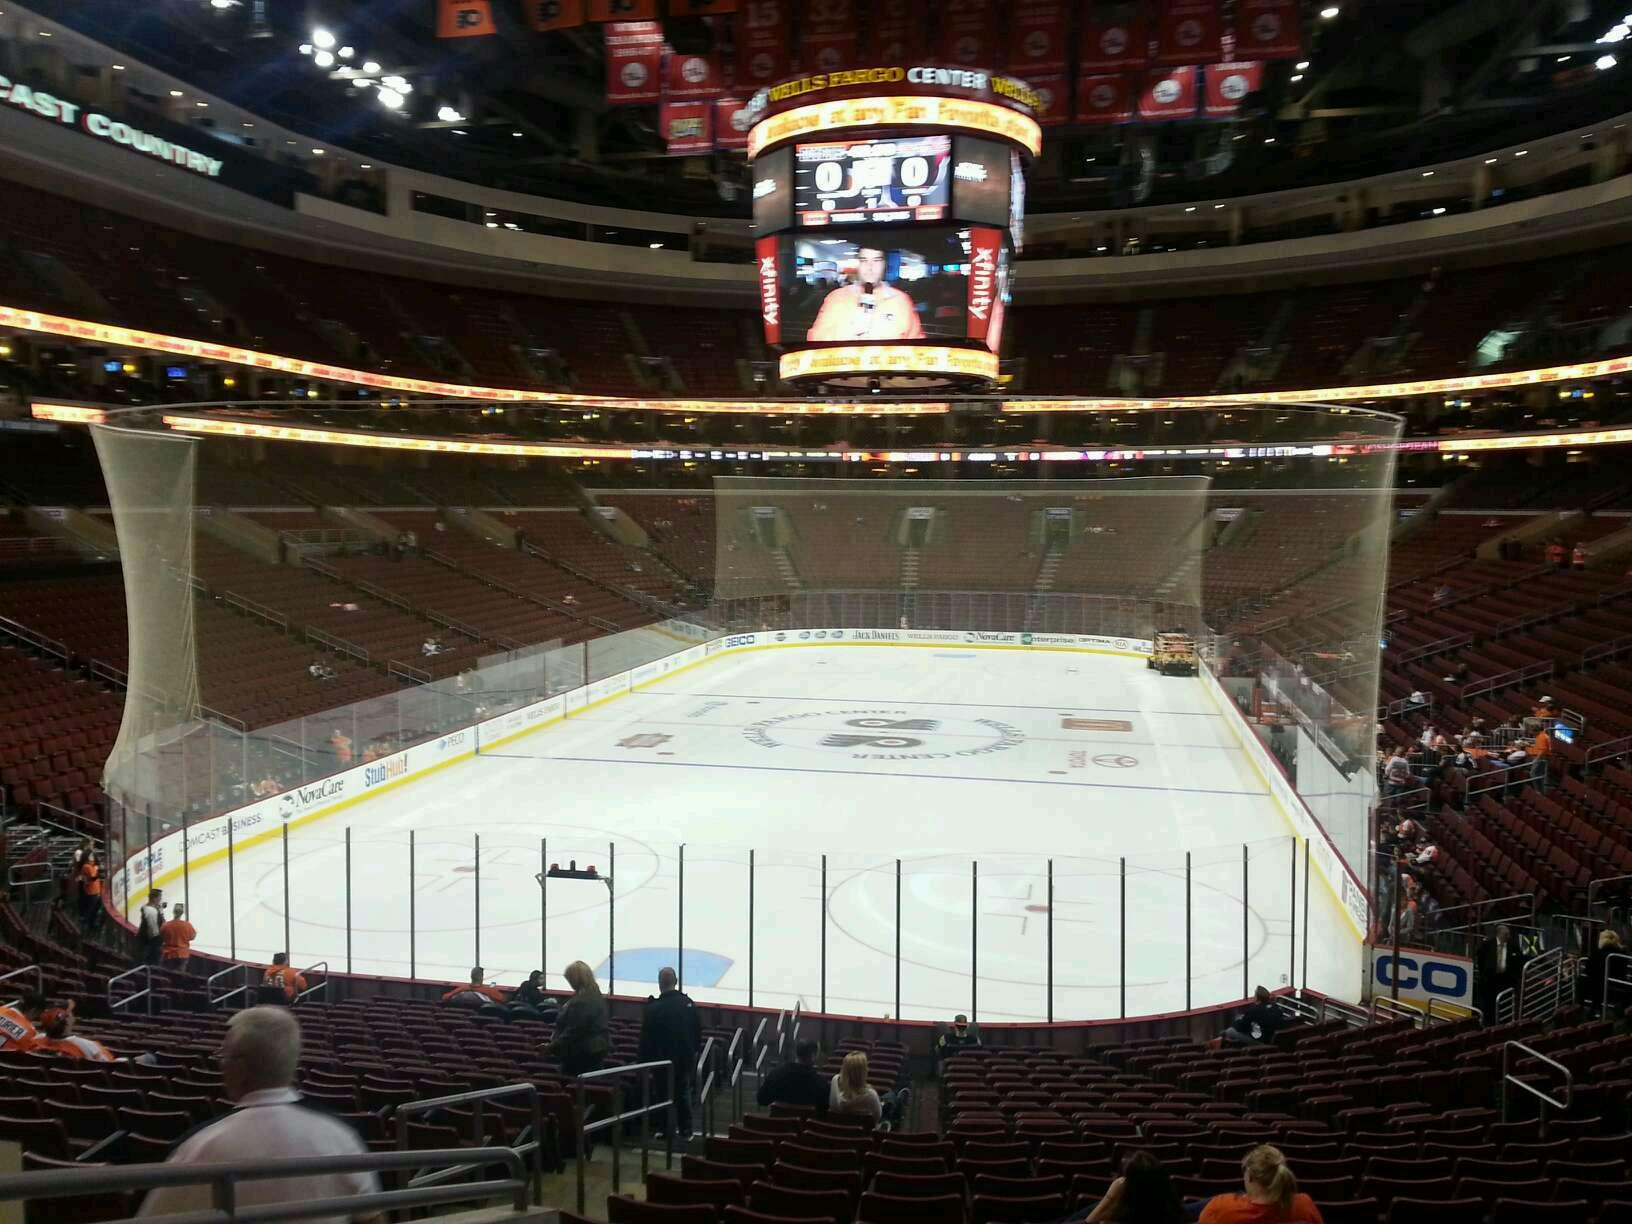 Philadelphia Flyers Seat View for Wells Fargo Center Section 120, Row 23, Seat 2